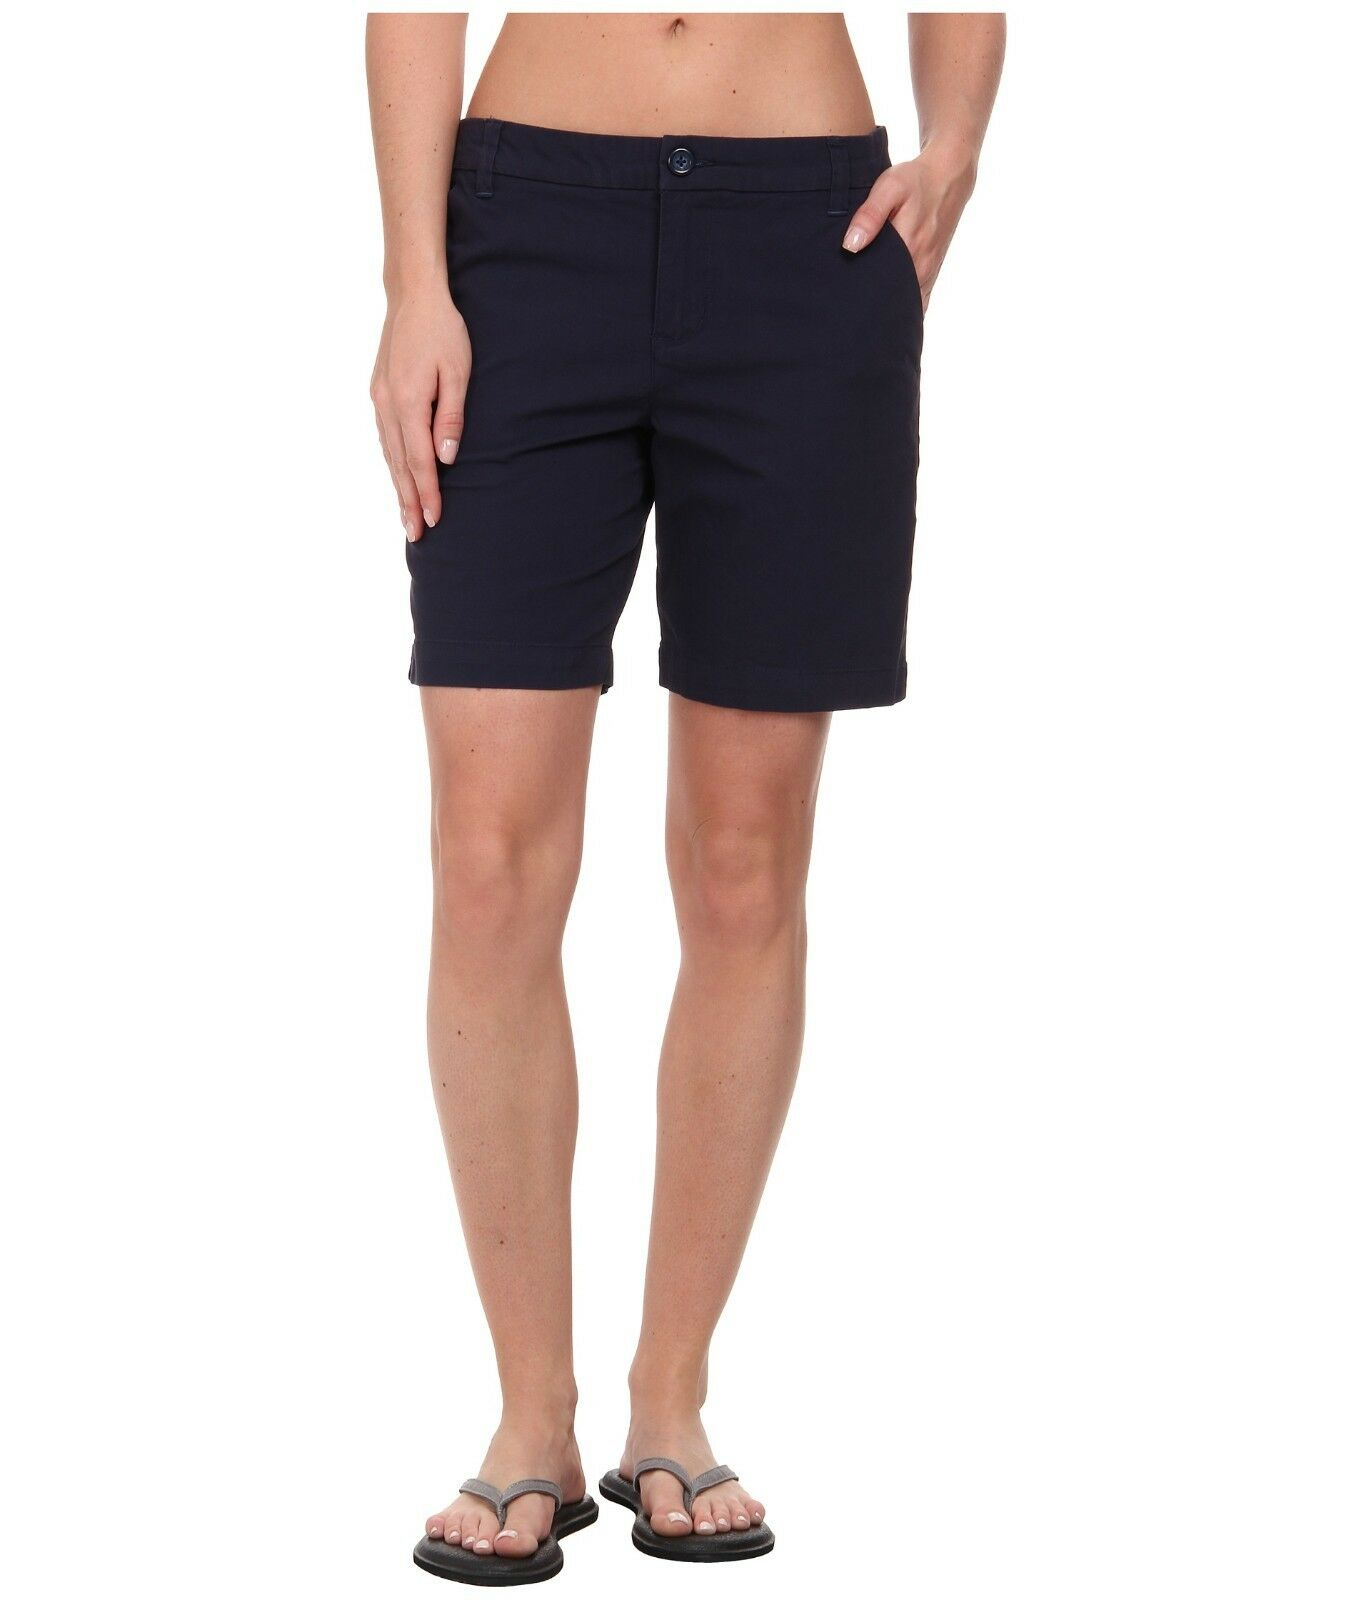 PATAGONIA Women's Stretch All-Wear Shorts 8  Inseam Size 4 NAVY blueE NWT